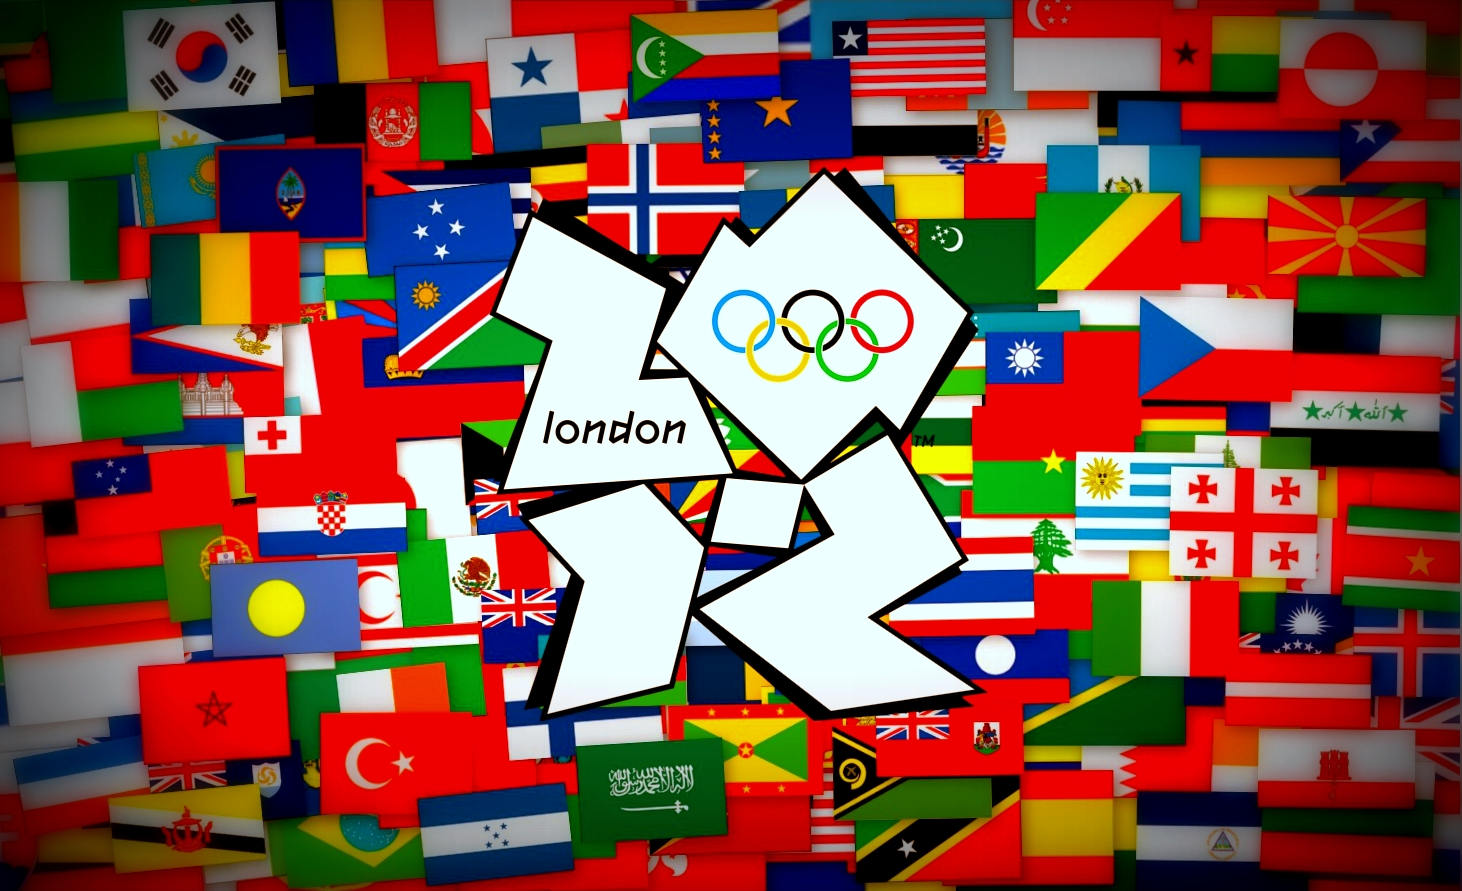 Olympic Countries flags High Quality Images 1462x891